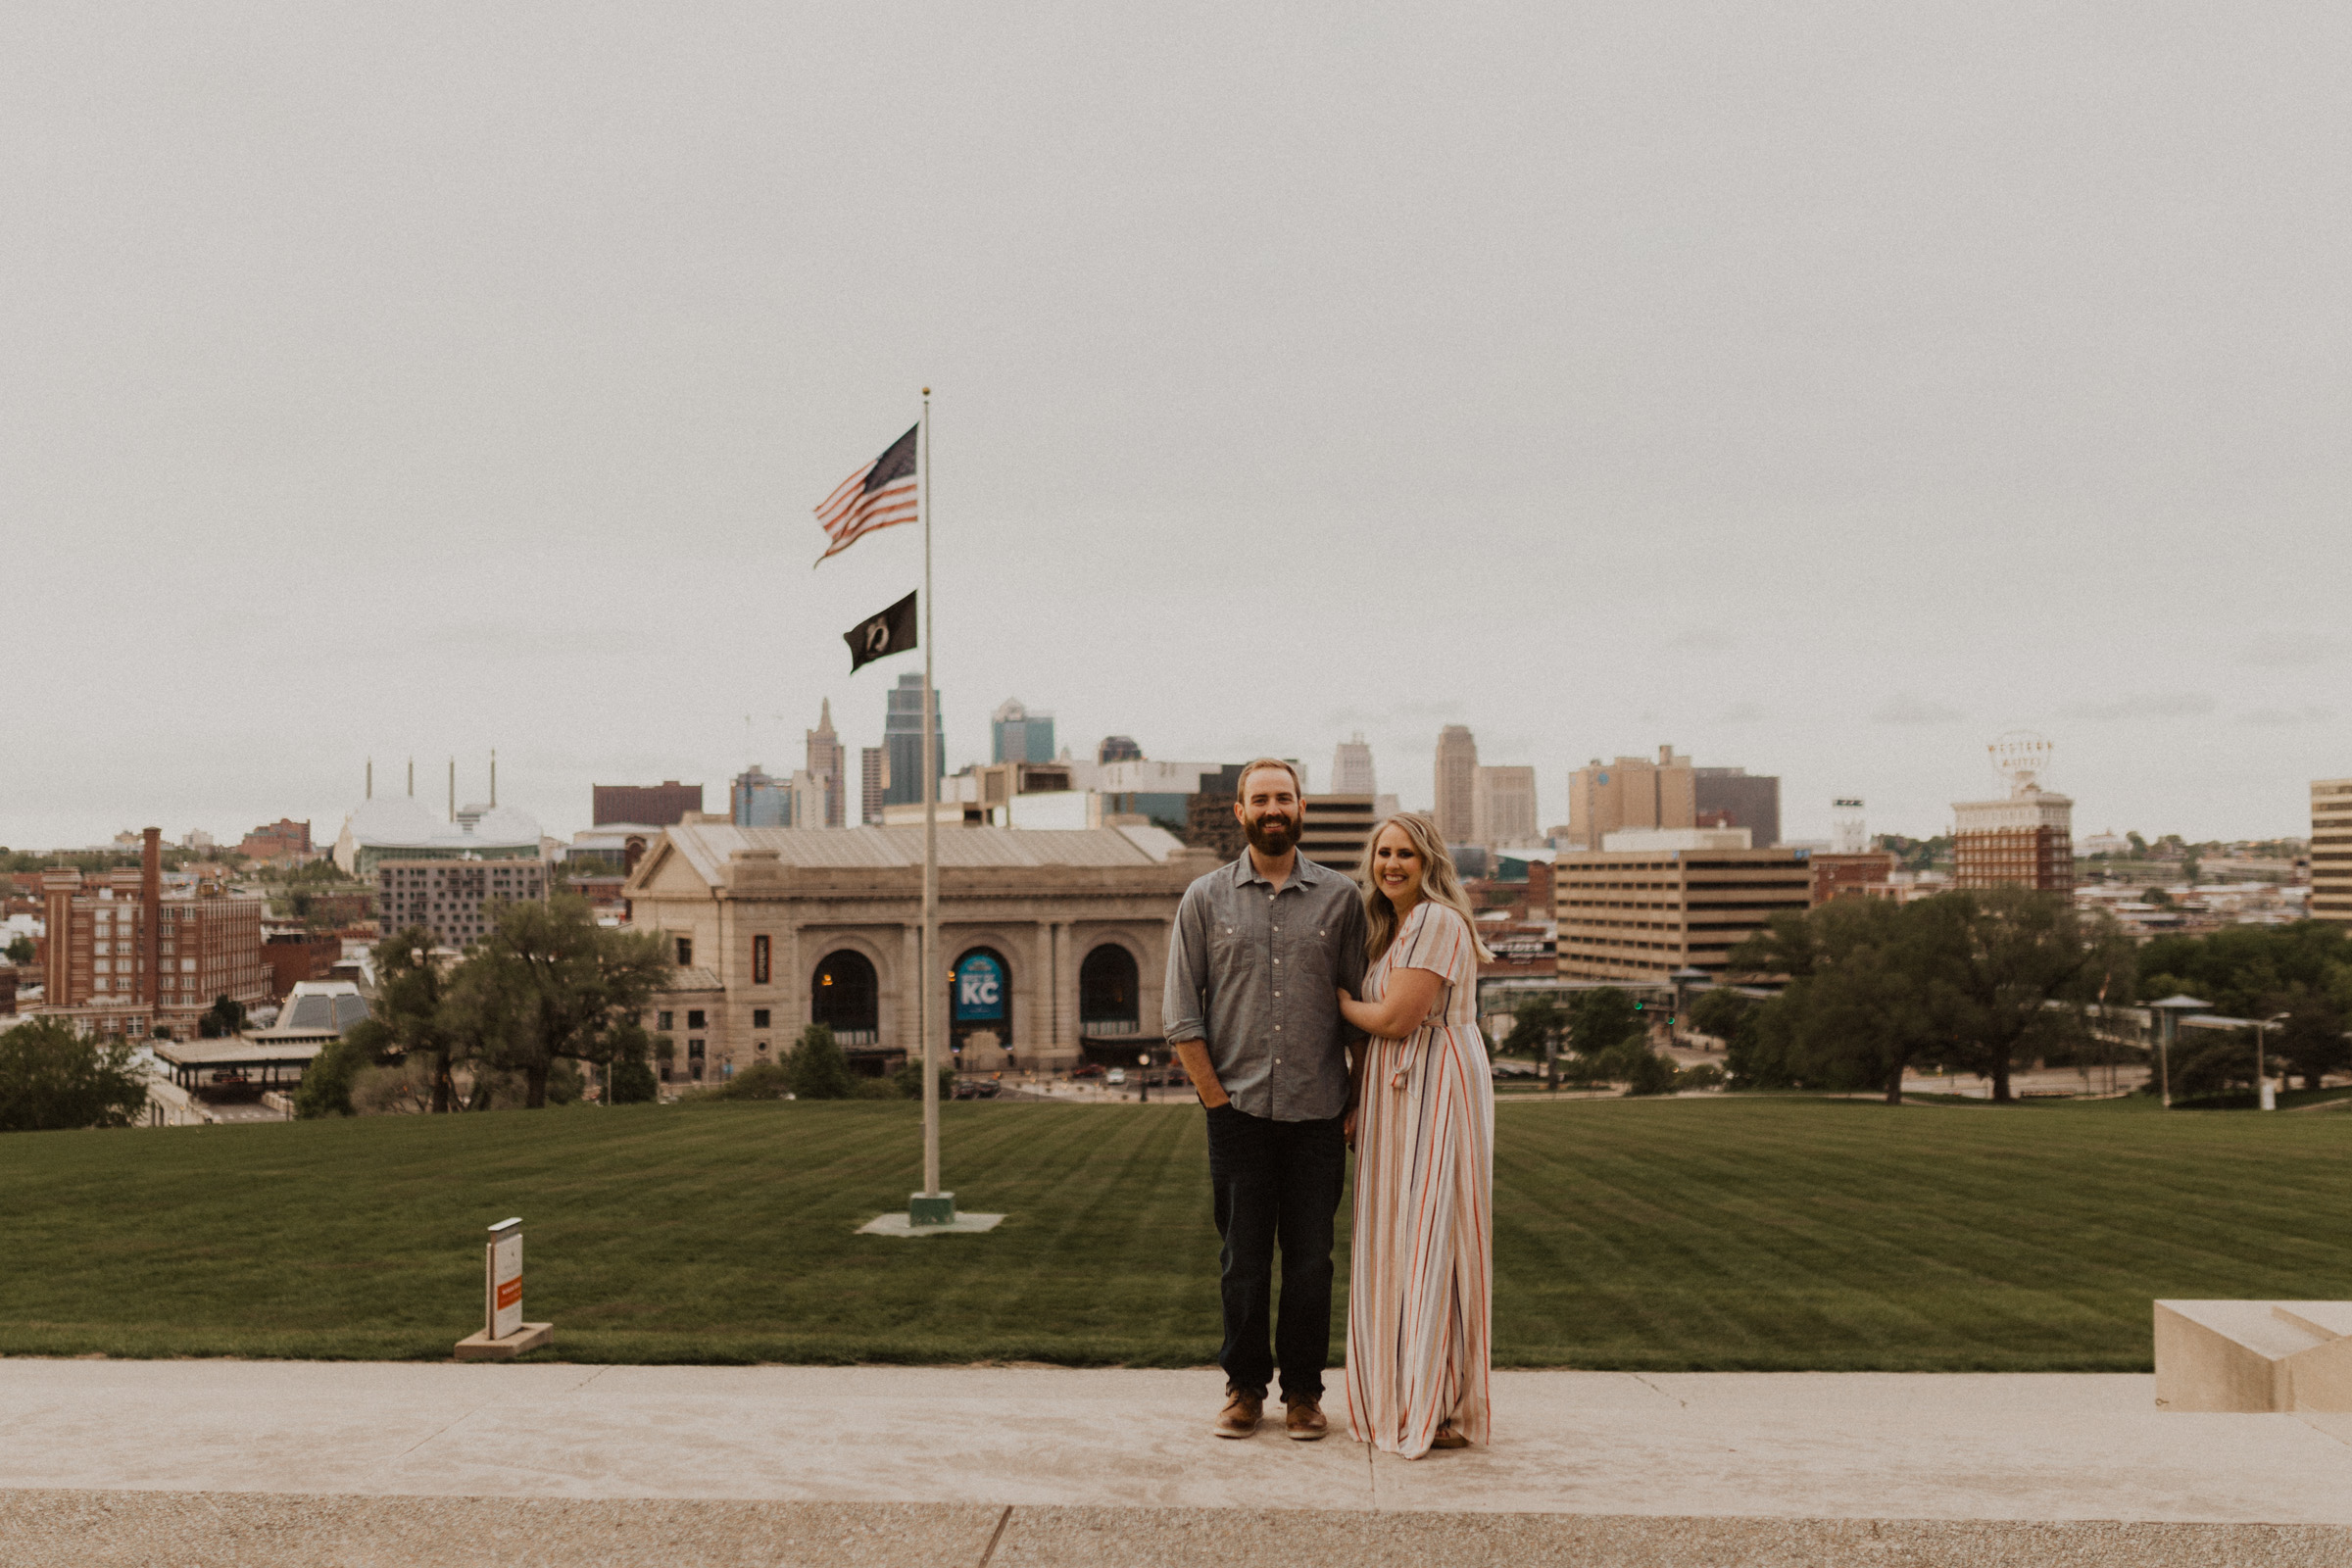 alyssa barletter photography kansas city liberty memorial loose park engagement session photographer-14.jpg